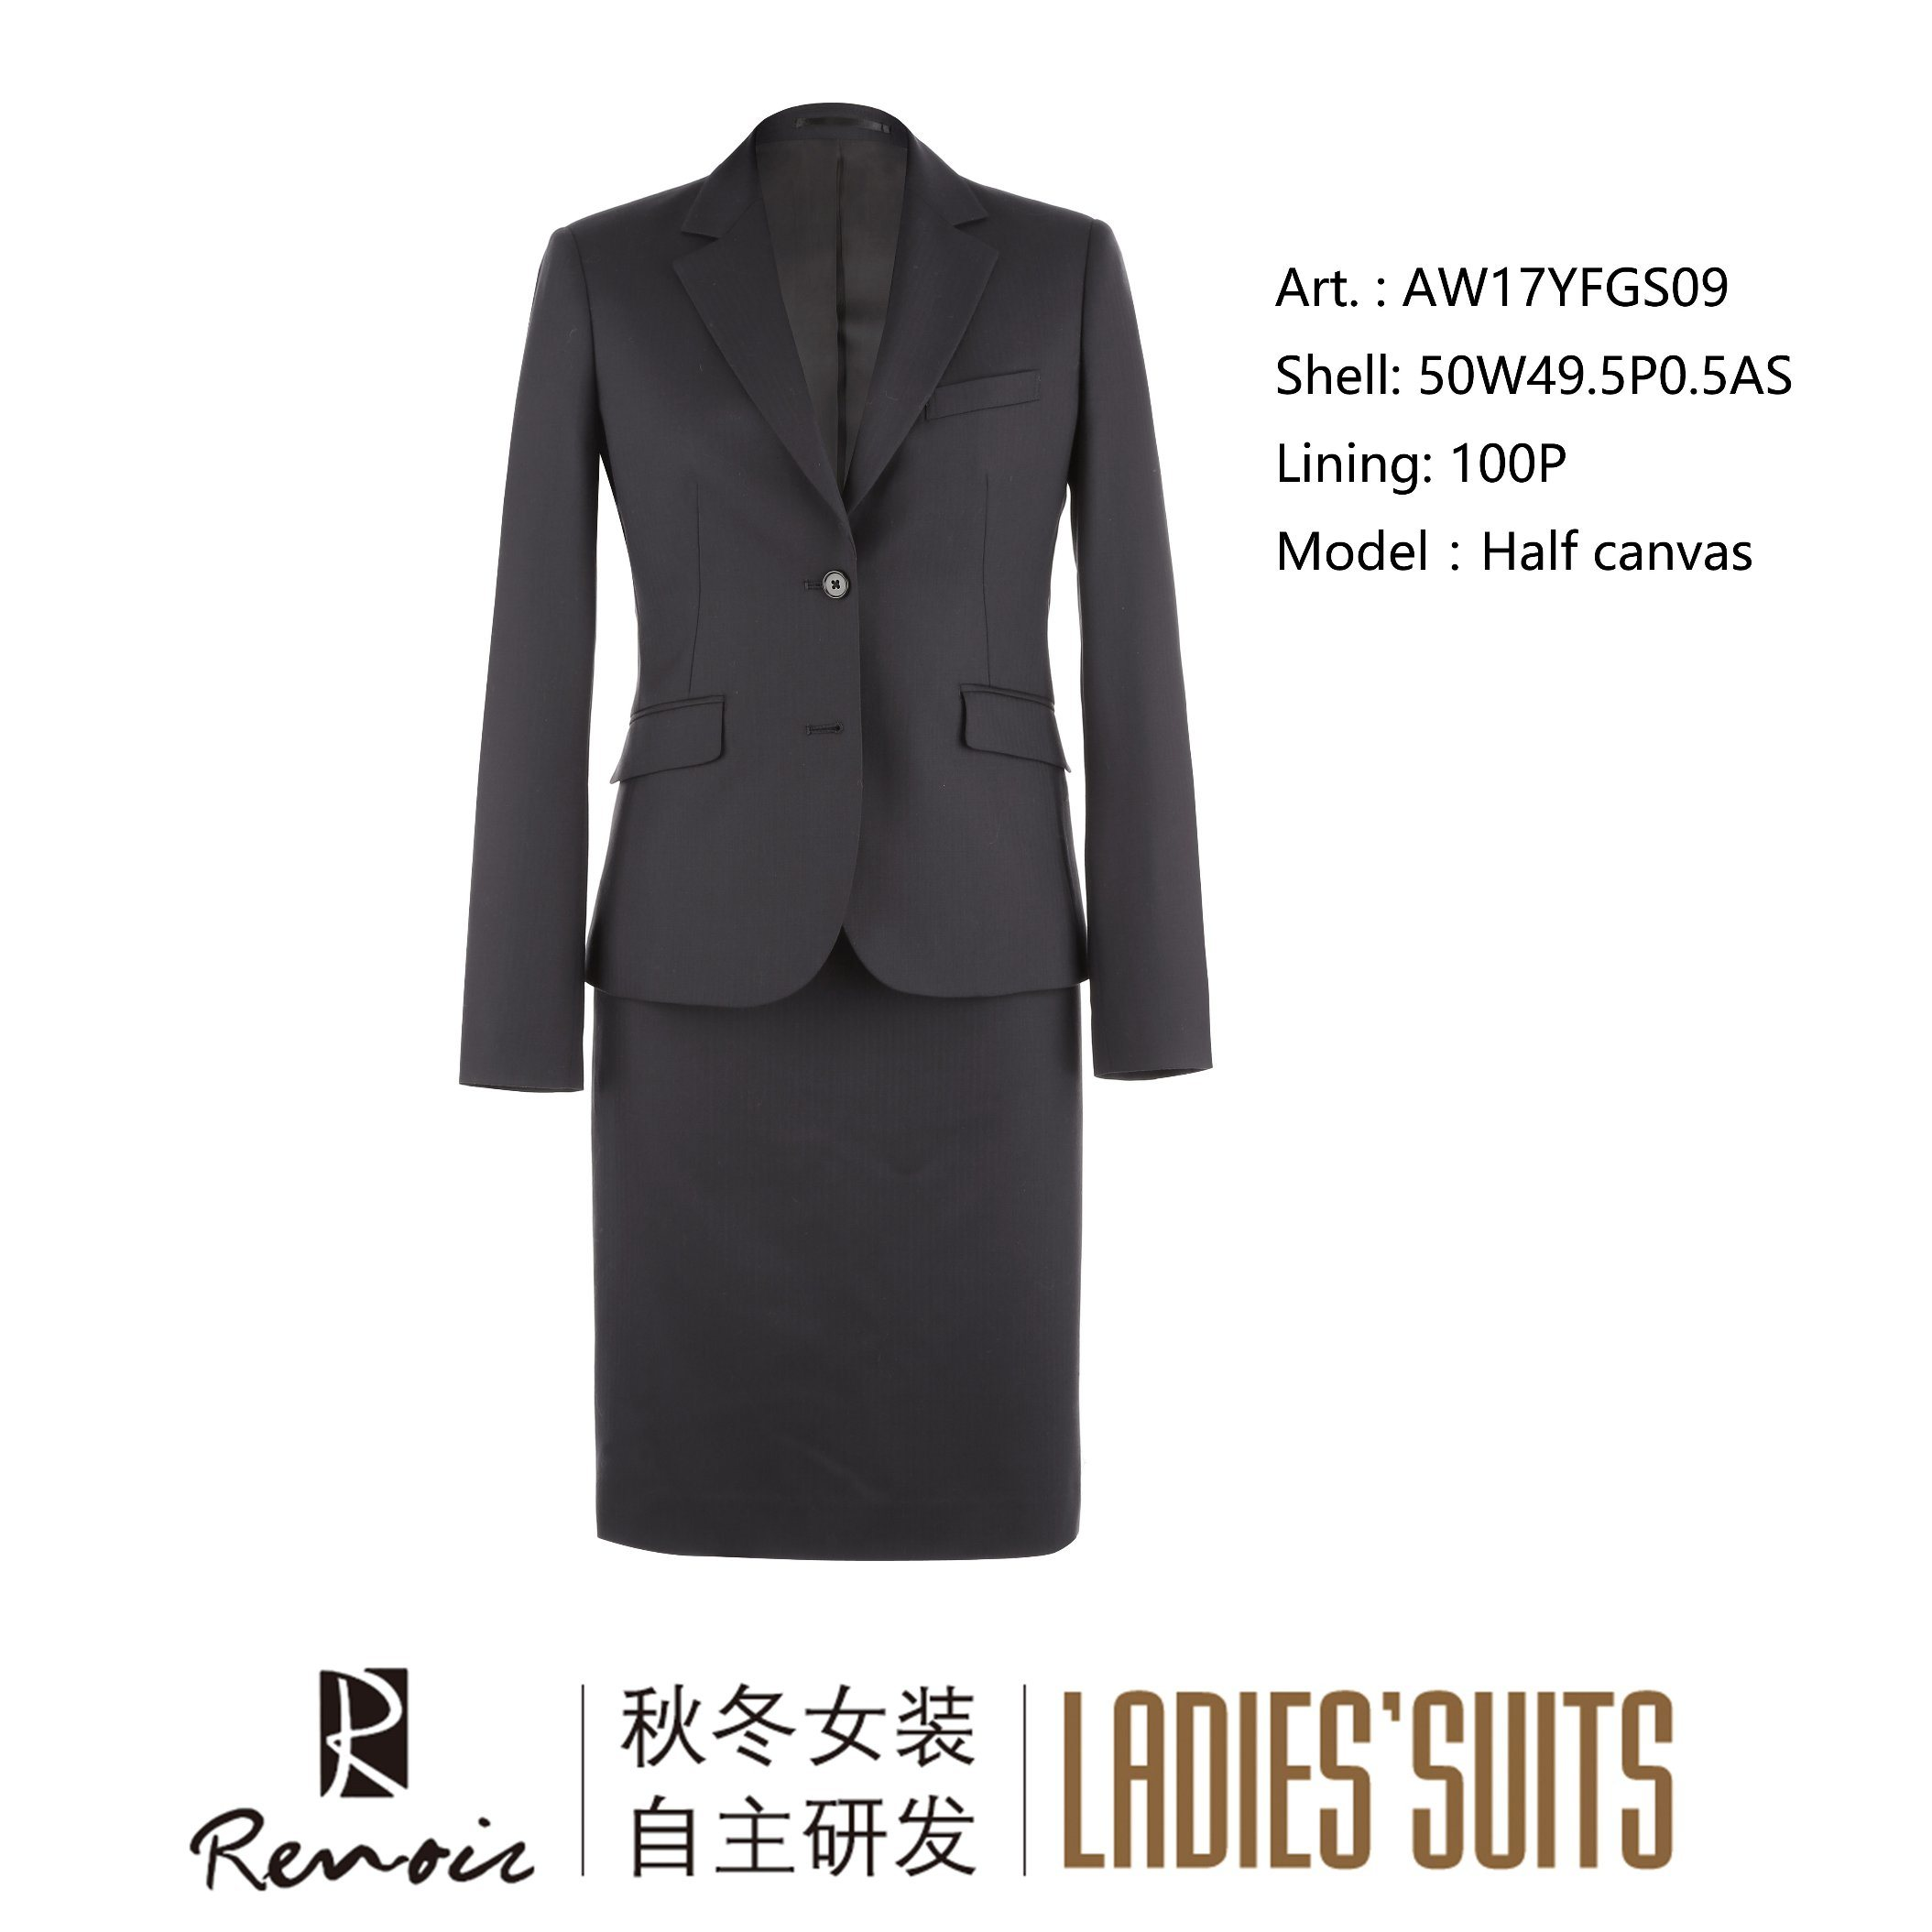 OEM 2 Piece Notch Lapel Half Canvas Women′s Business Suit